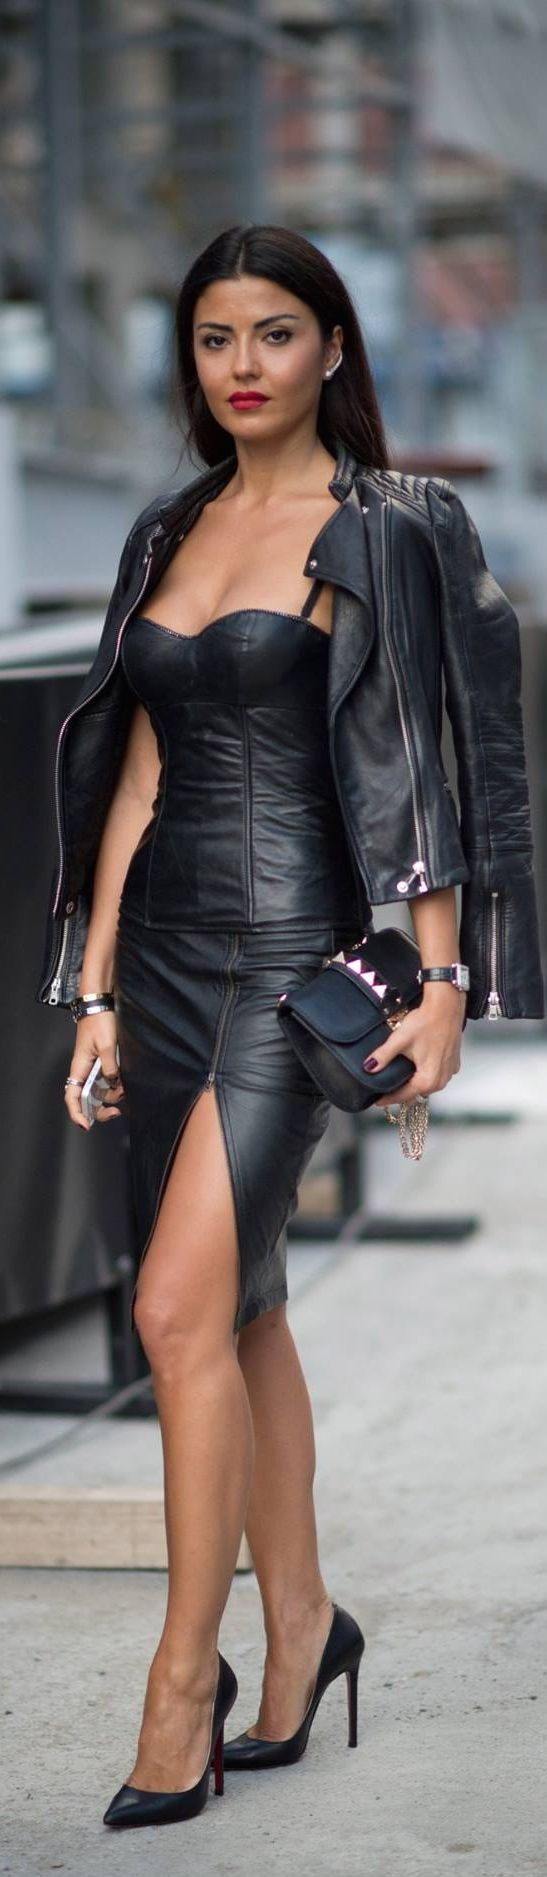 I want that whole outfit... Except the clutch                                                                                                                                                                                 More